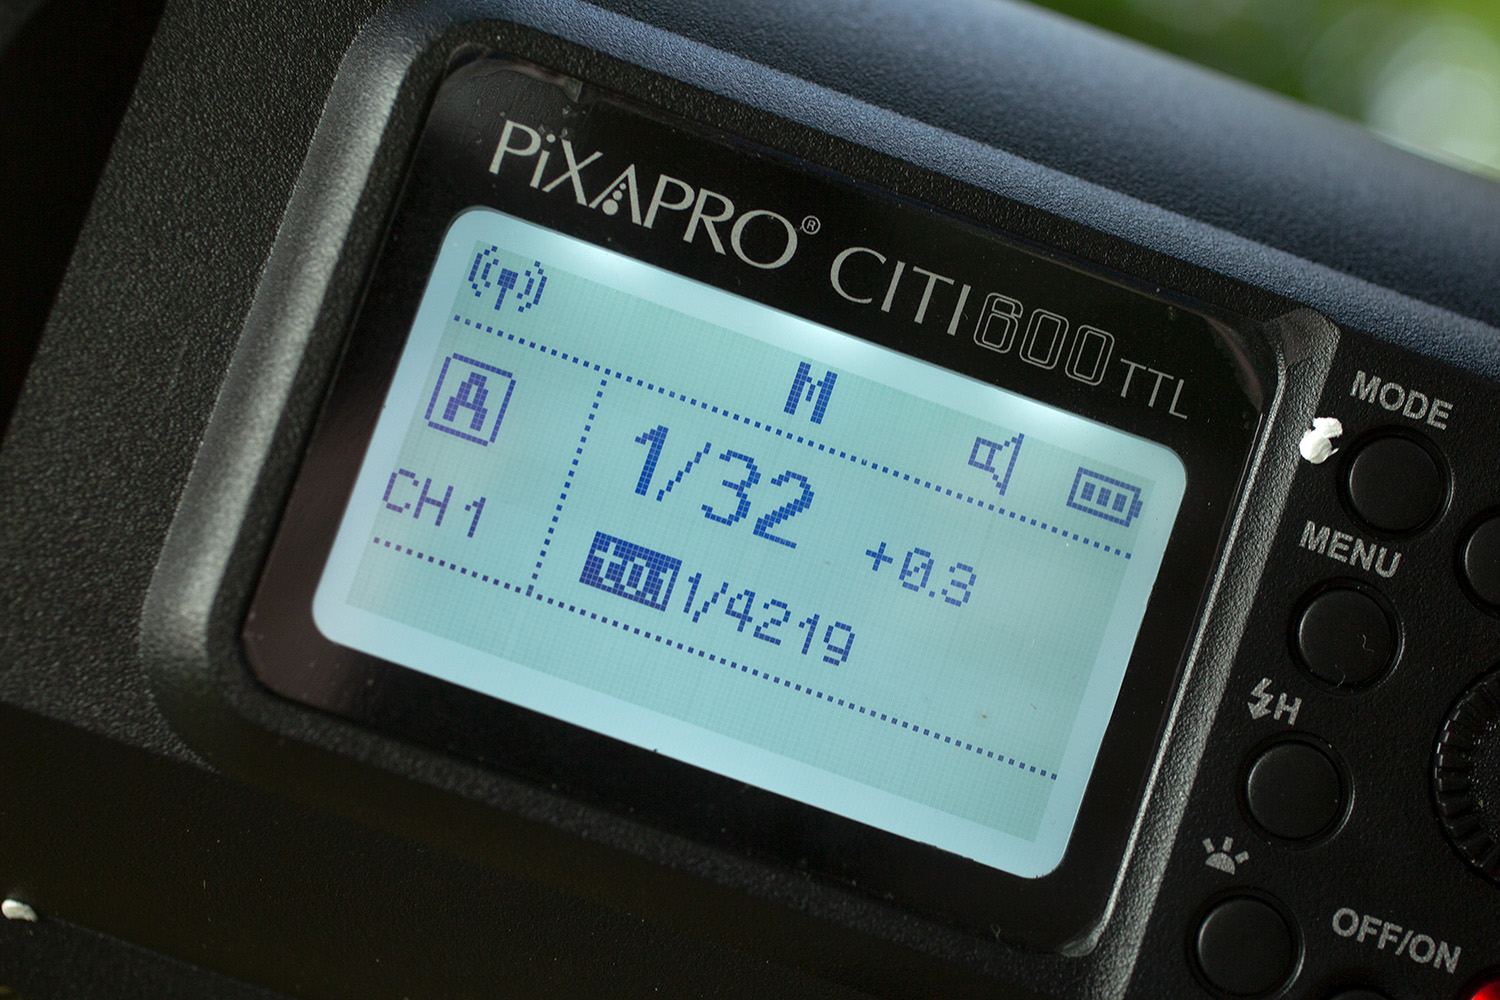 Light Review: The PiXAPRO CITI600 Portable Strobe (Godox Wistro AD600BM) - LED display